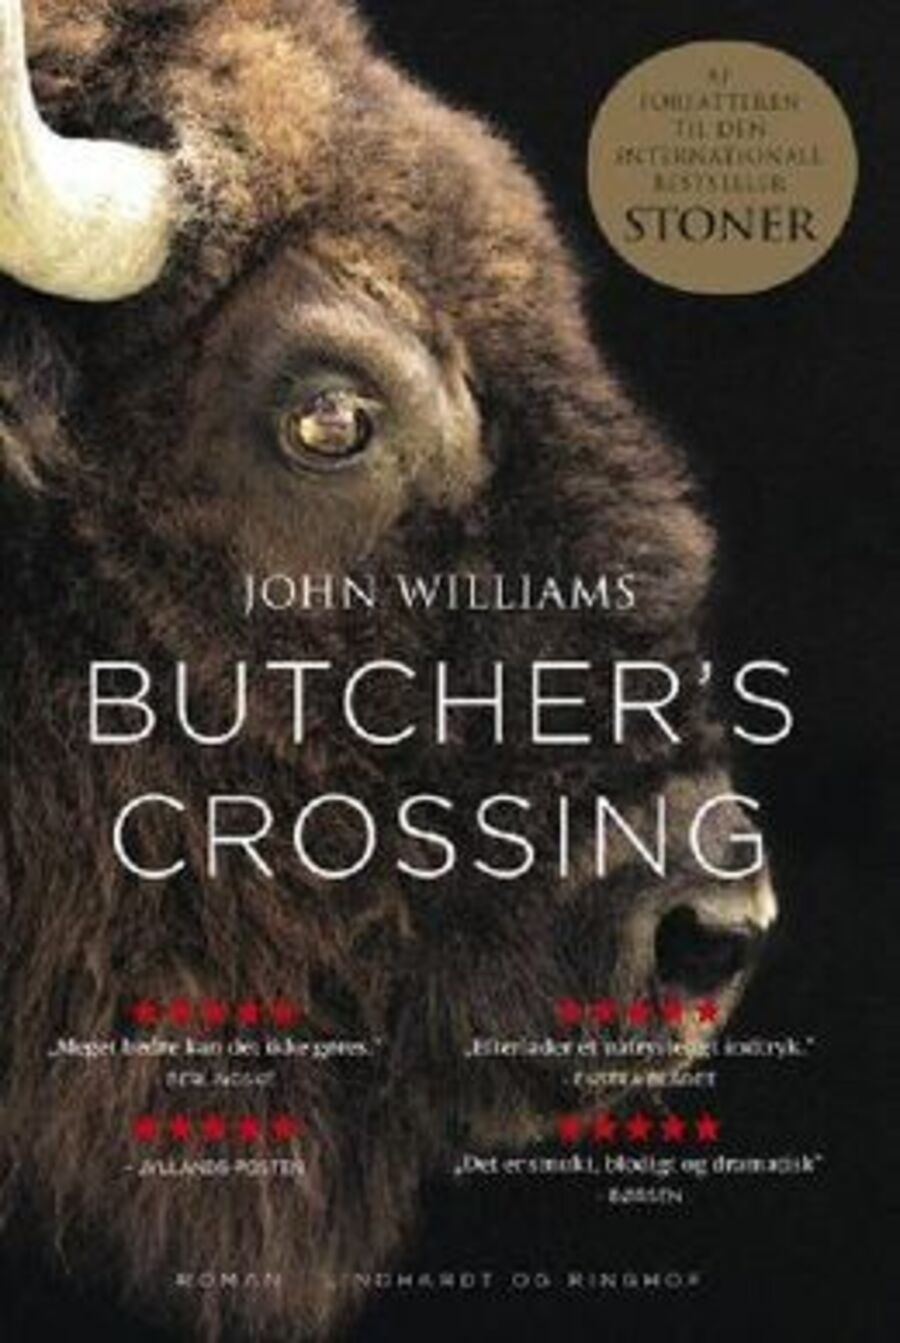 Forside på 'Butcher's Crossing'